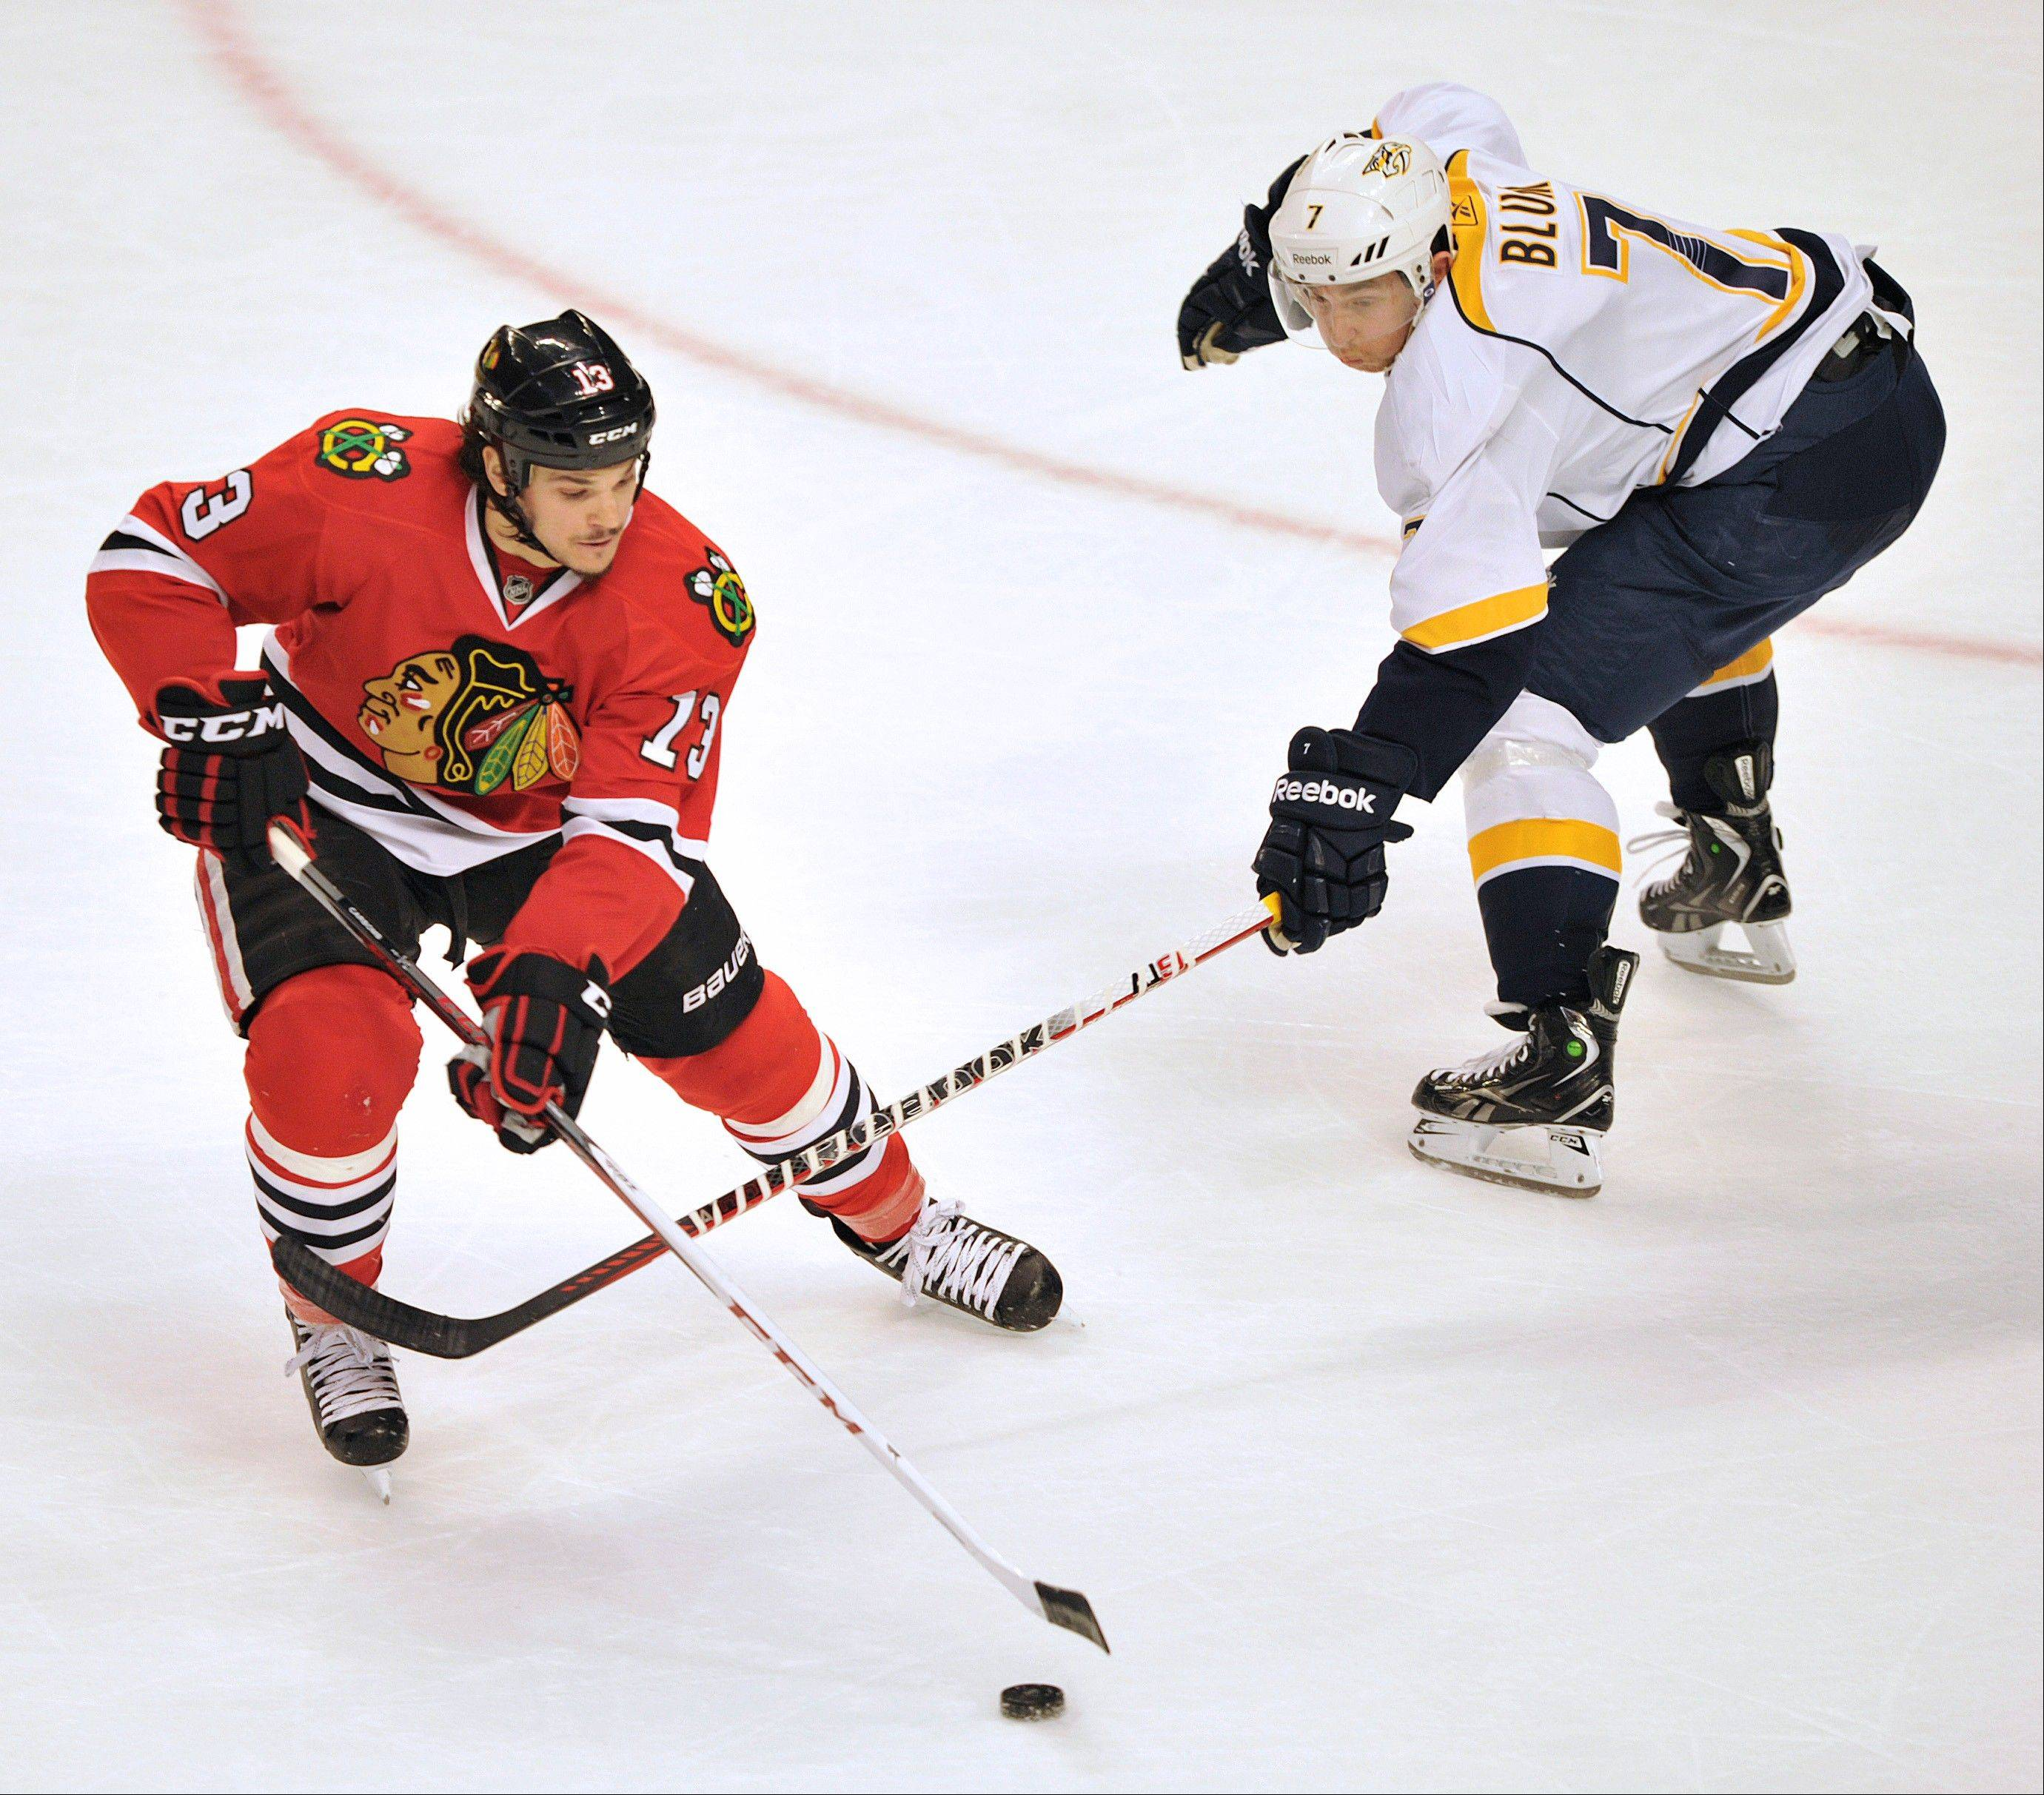 Chicago Blackhawks' Daniel Carcillo (13) keeps the puck away from Nashville Predators' Jonathon Blum during the second period.